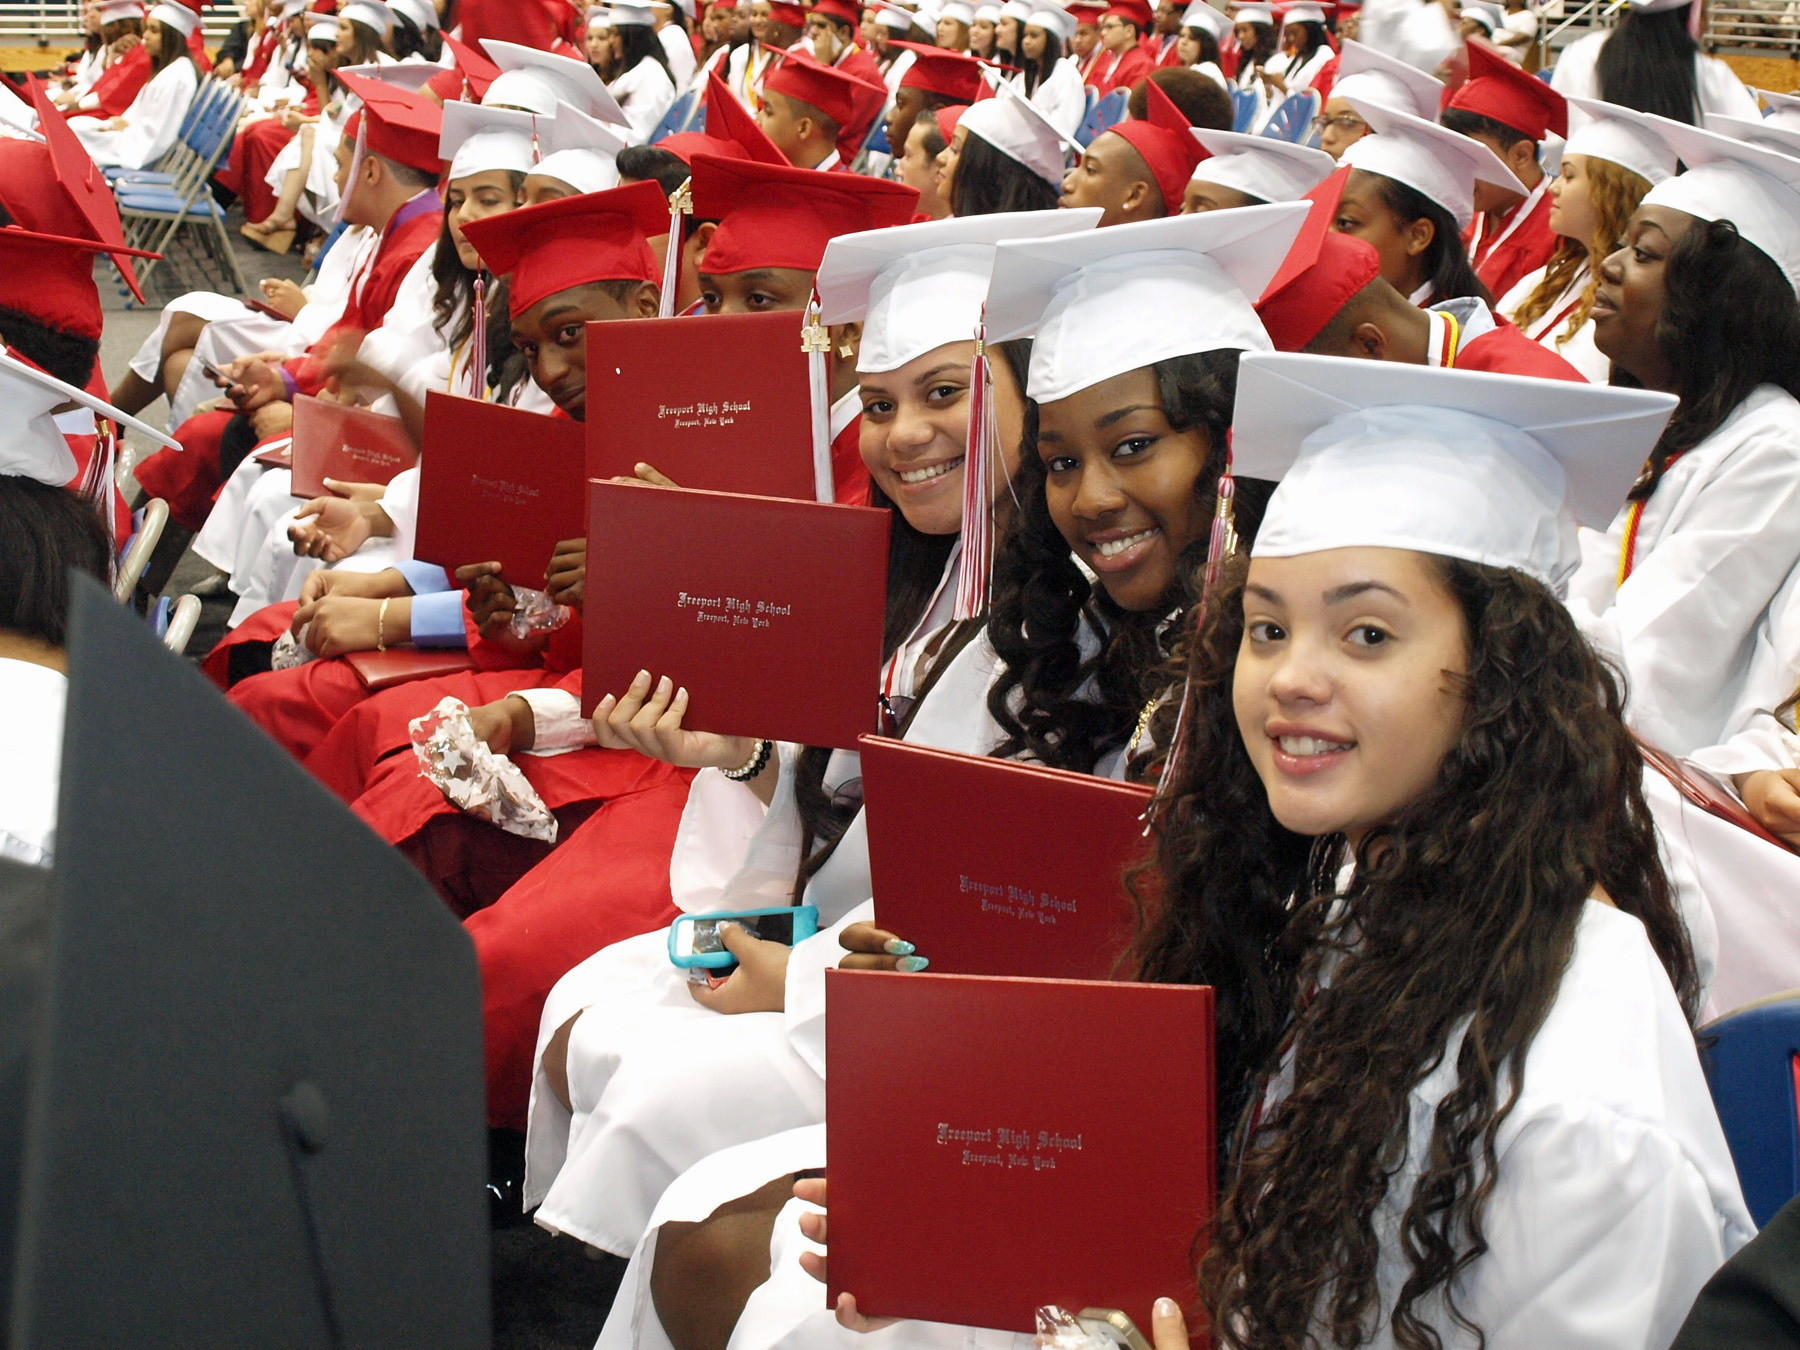 Freeport High School graduates of the class of 2014 proudly displayed their diploma holders. For the list of graduates and photographs from the ceremony.